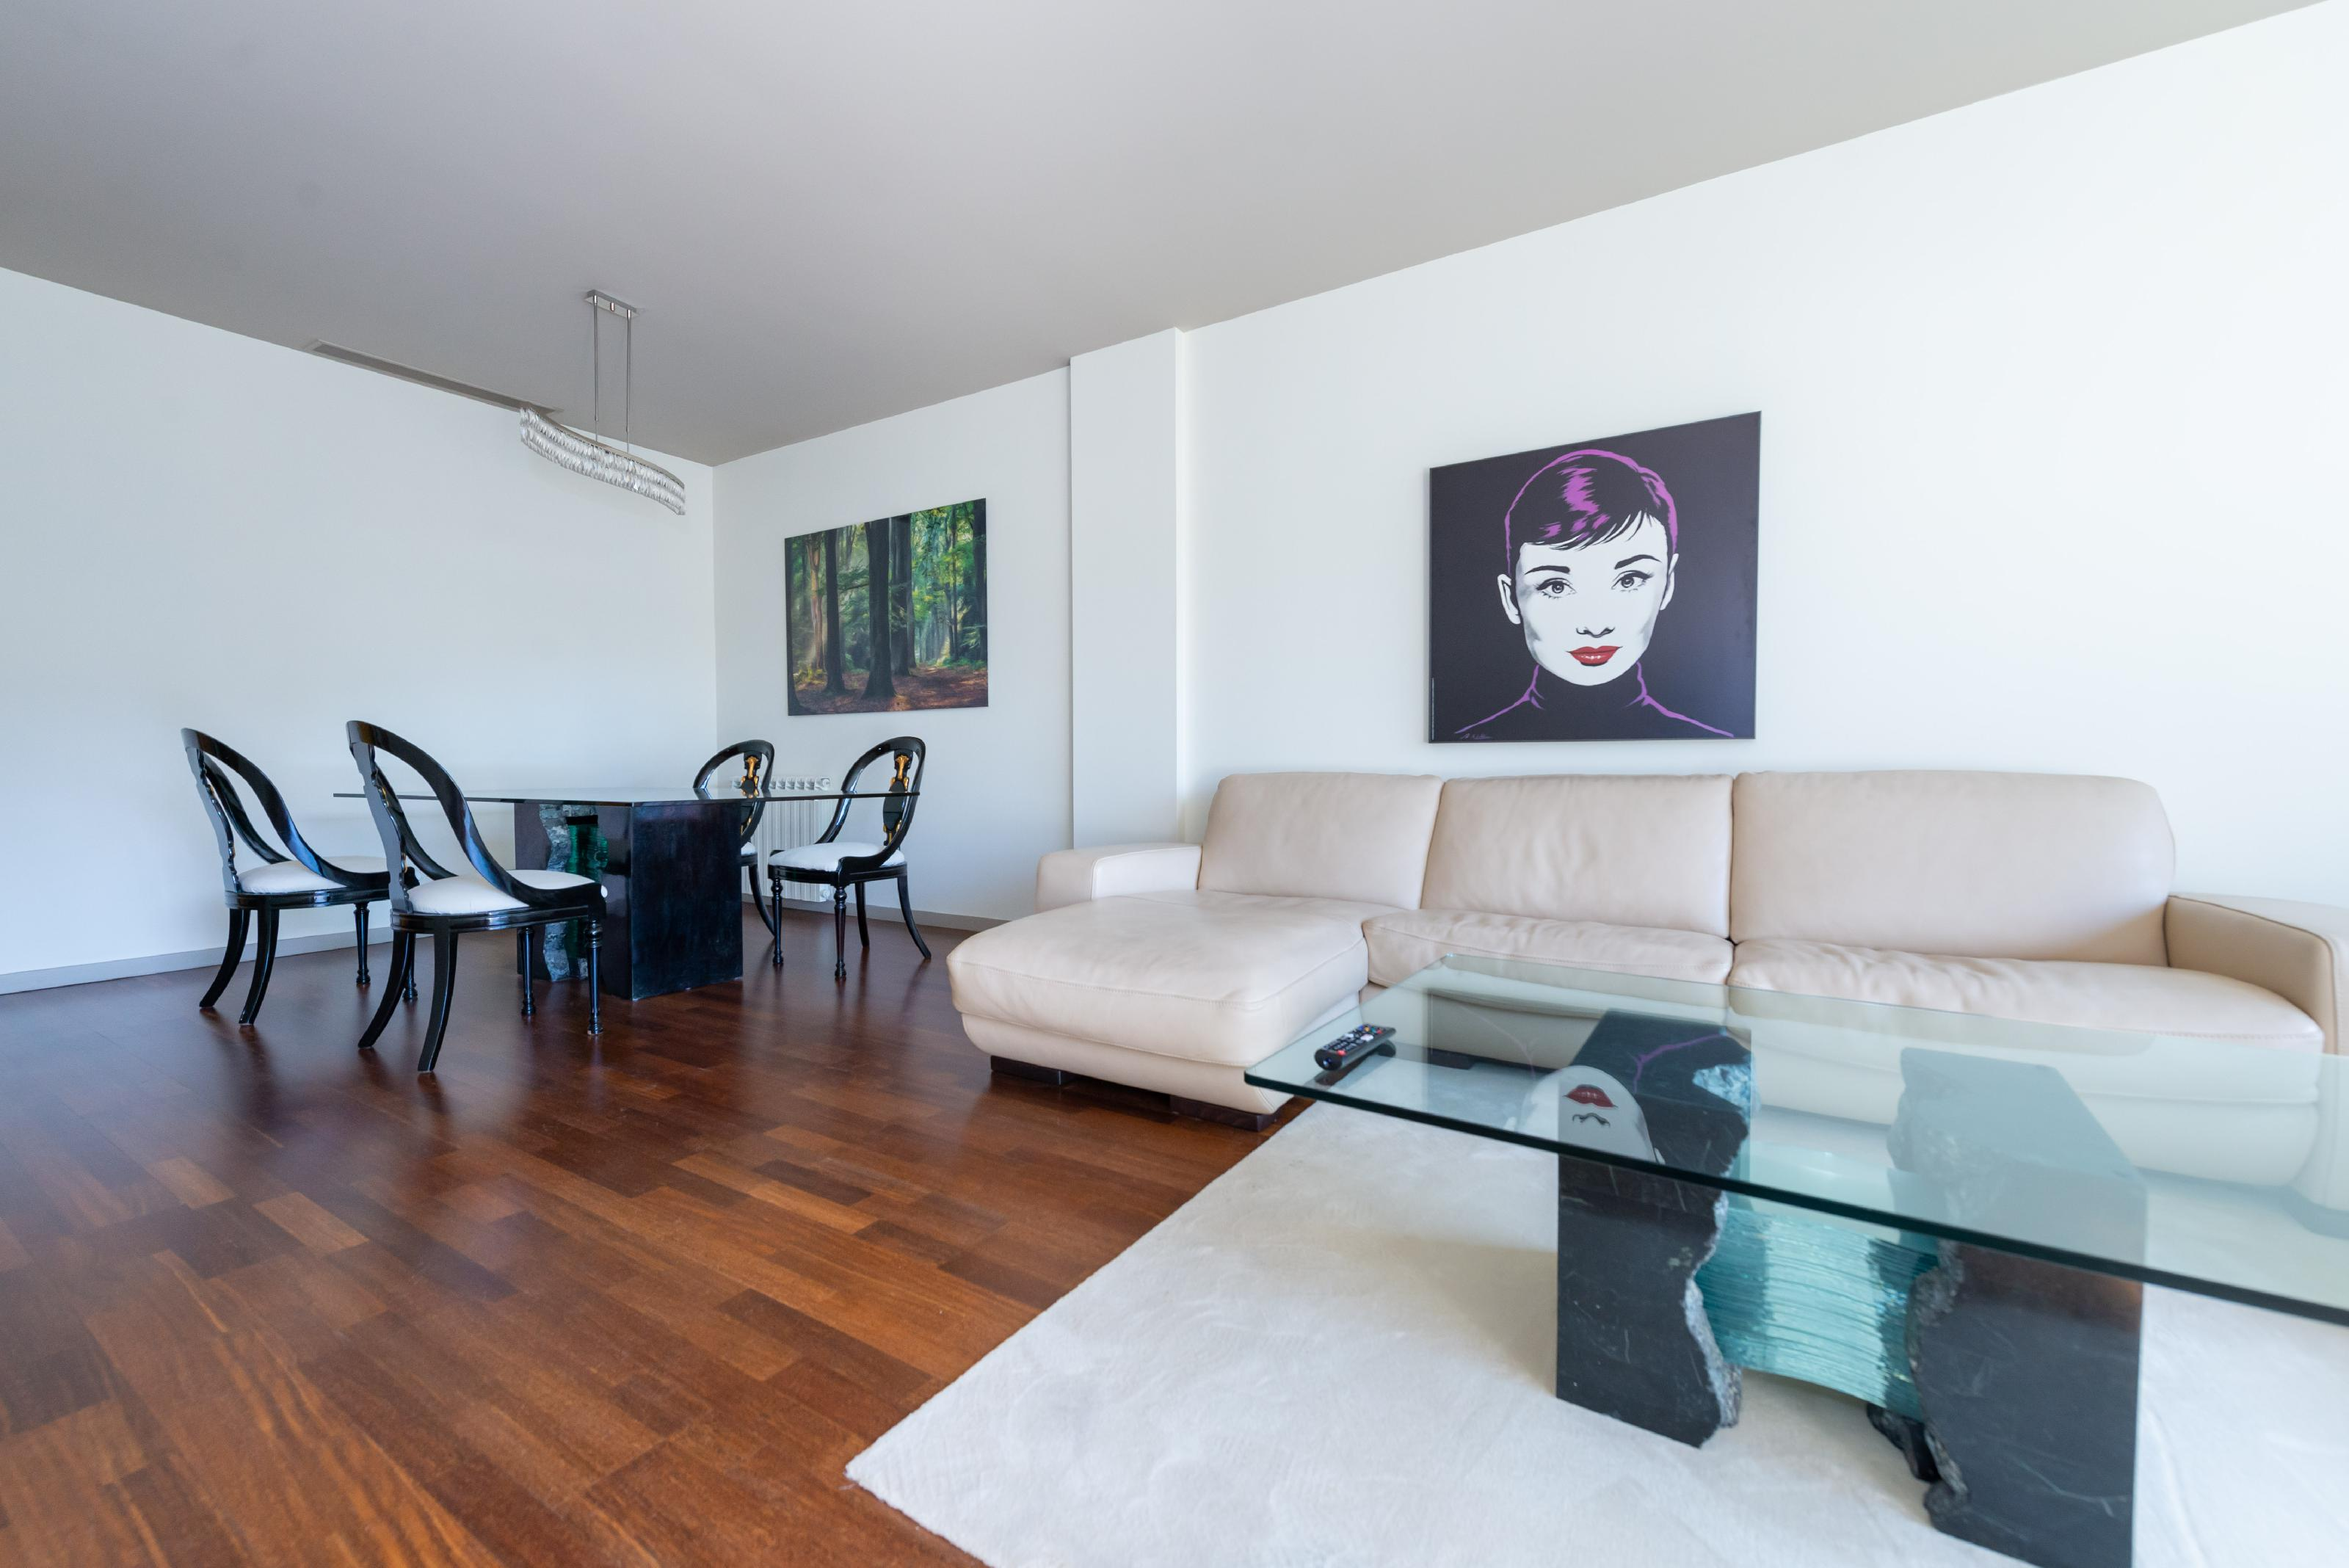 246682 Flat for sale in Gràcia, Vallcarca and Els Penitents 6